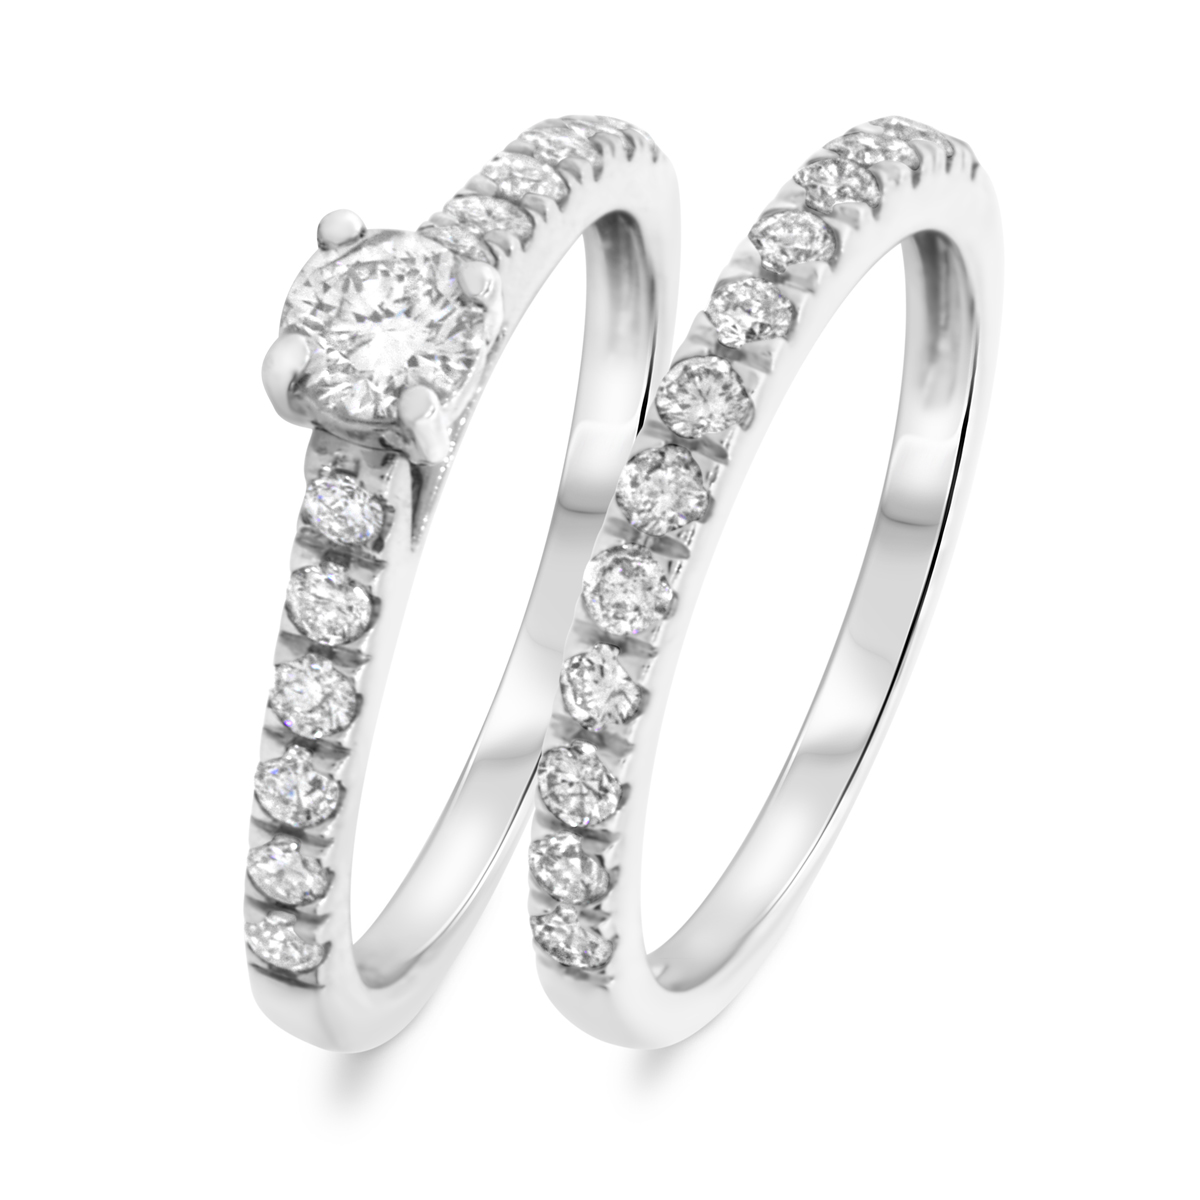 1 CT. T.W. Round Cut Diamond Ladies Bridal Wedding Ring Set 10K White Gold